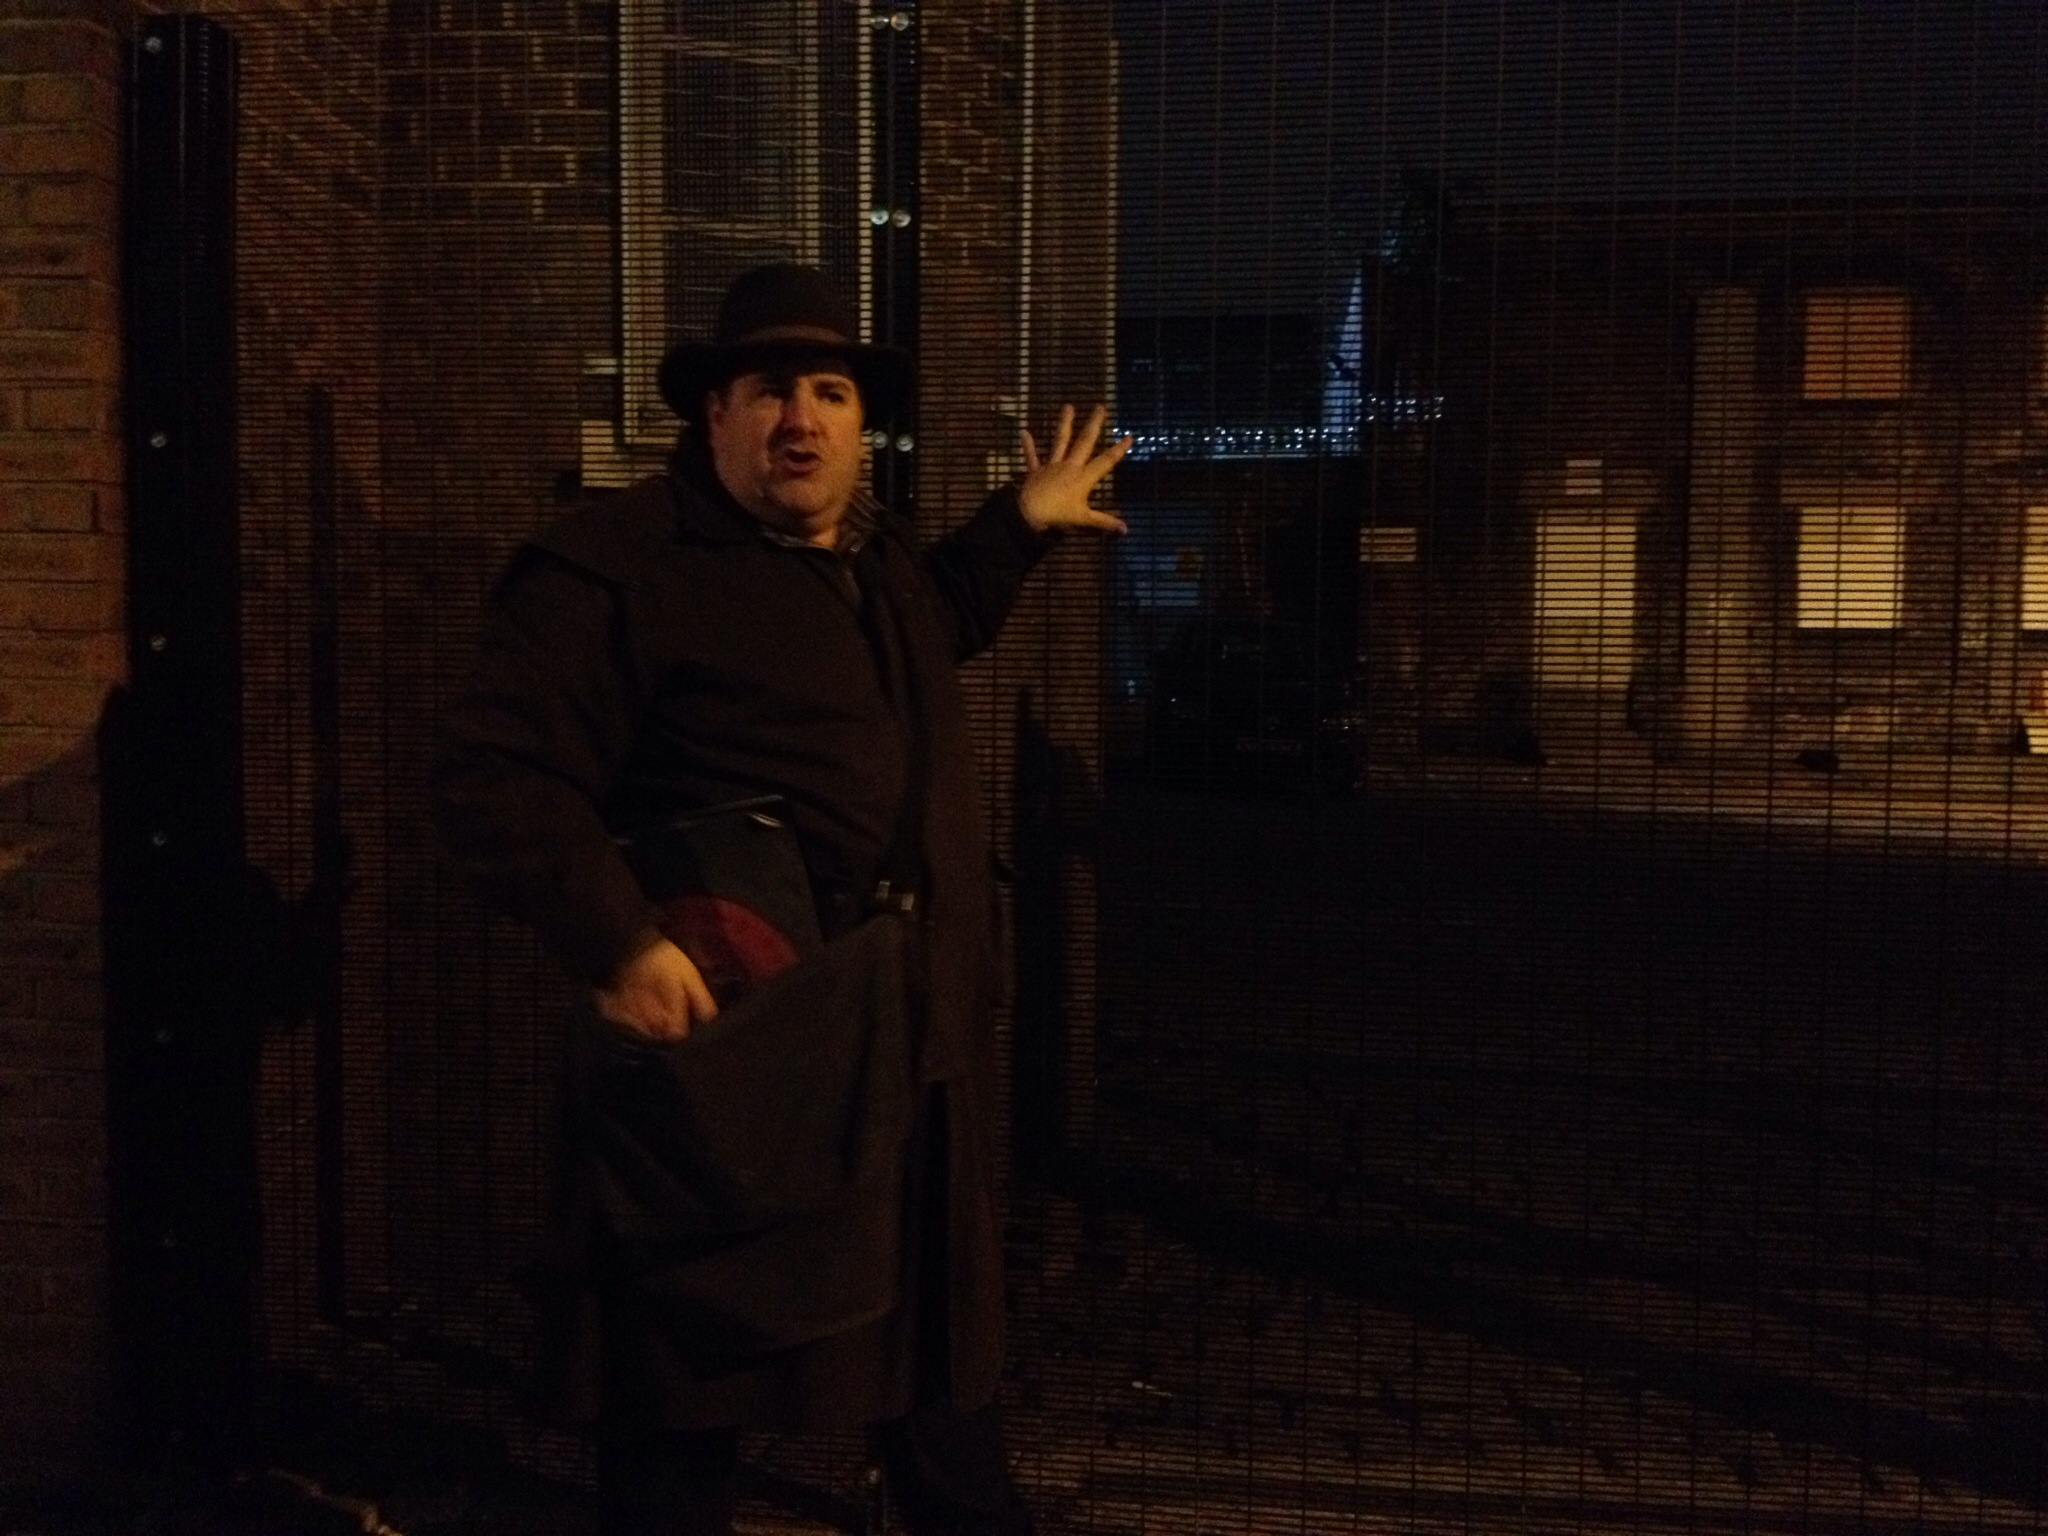 Jack the Ripper Walk with Ripper Vision